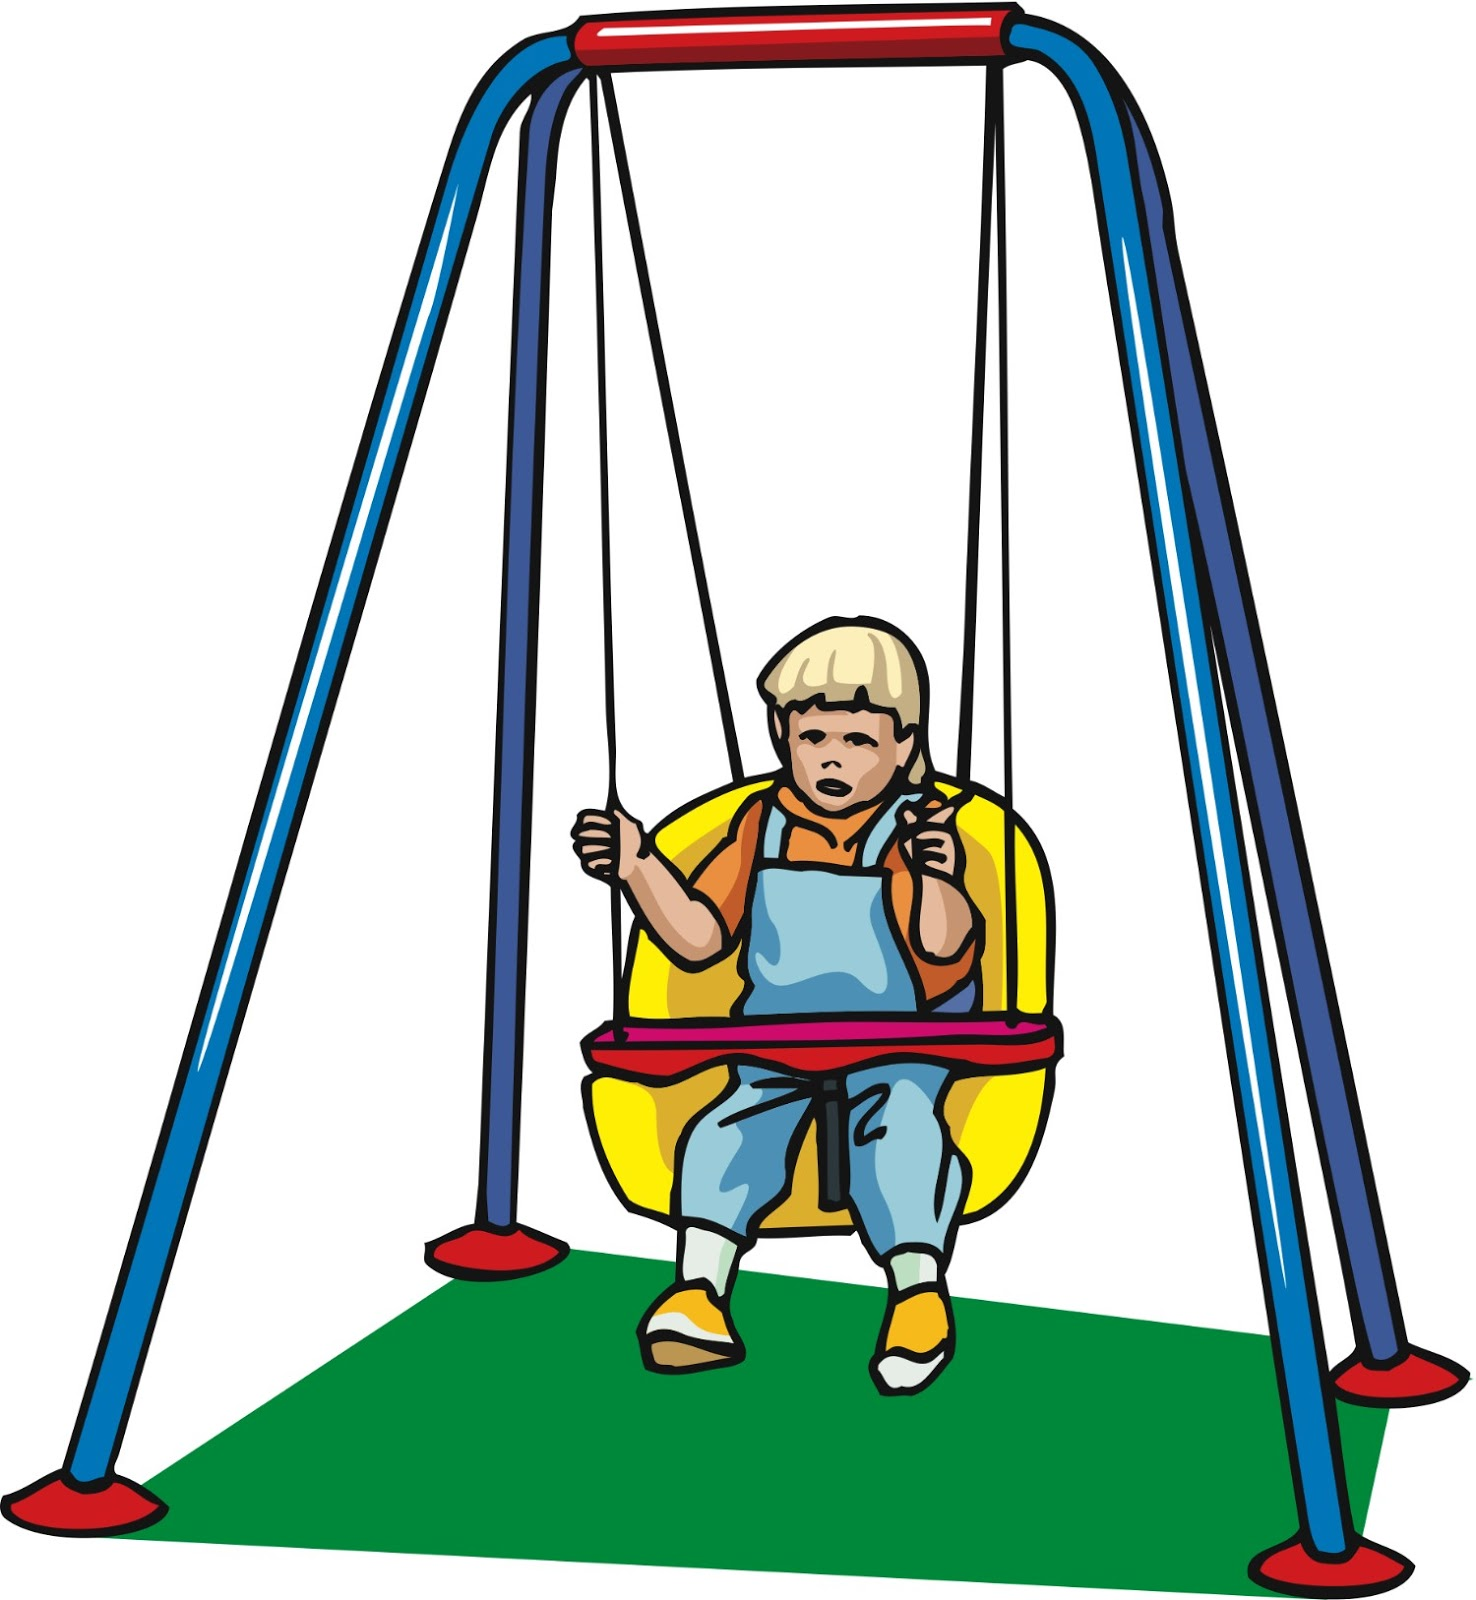 Swing Clipart Lap As My Swing Is On The